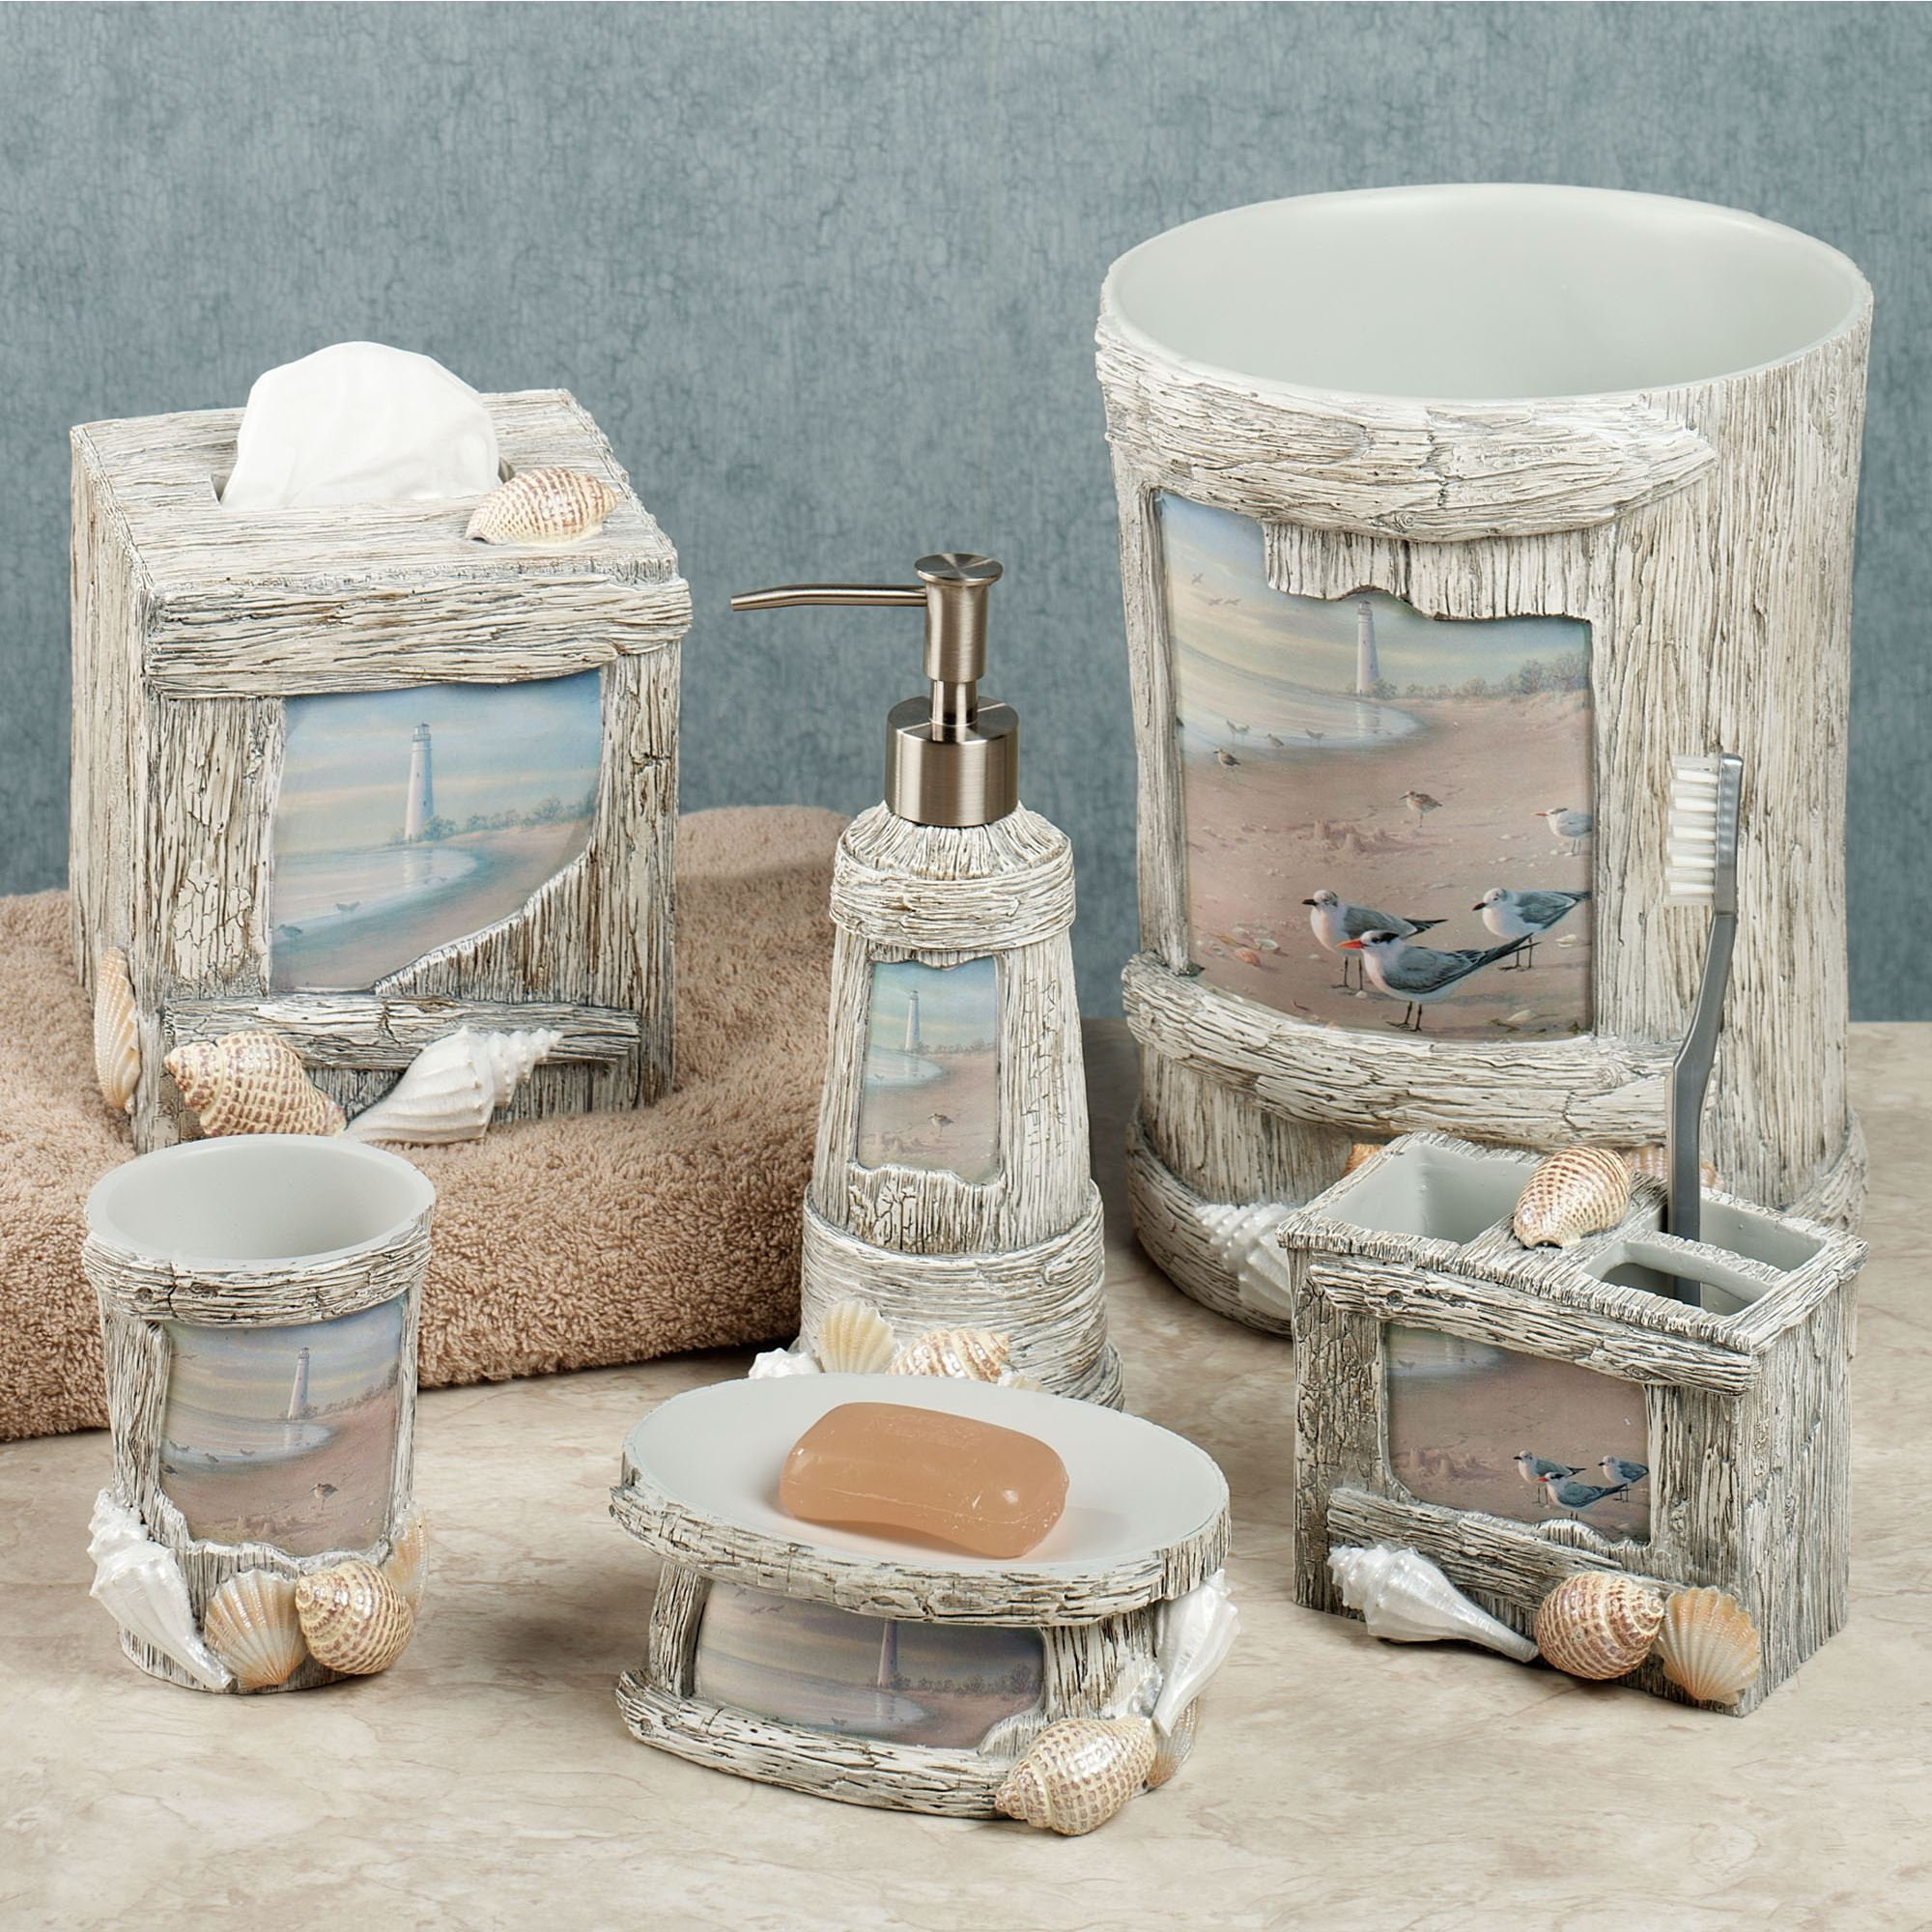 At the beach bath accessories for Bathroom accents